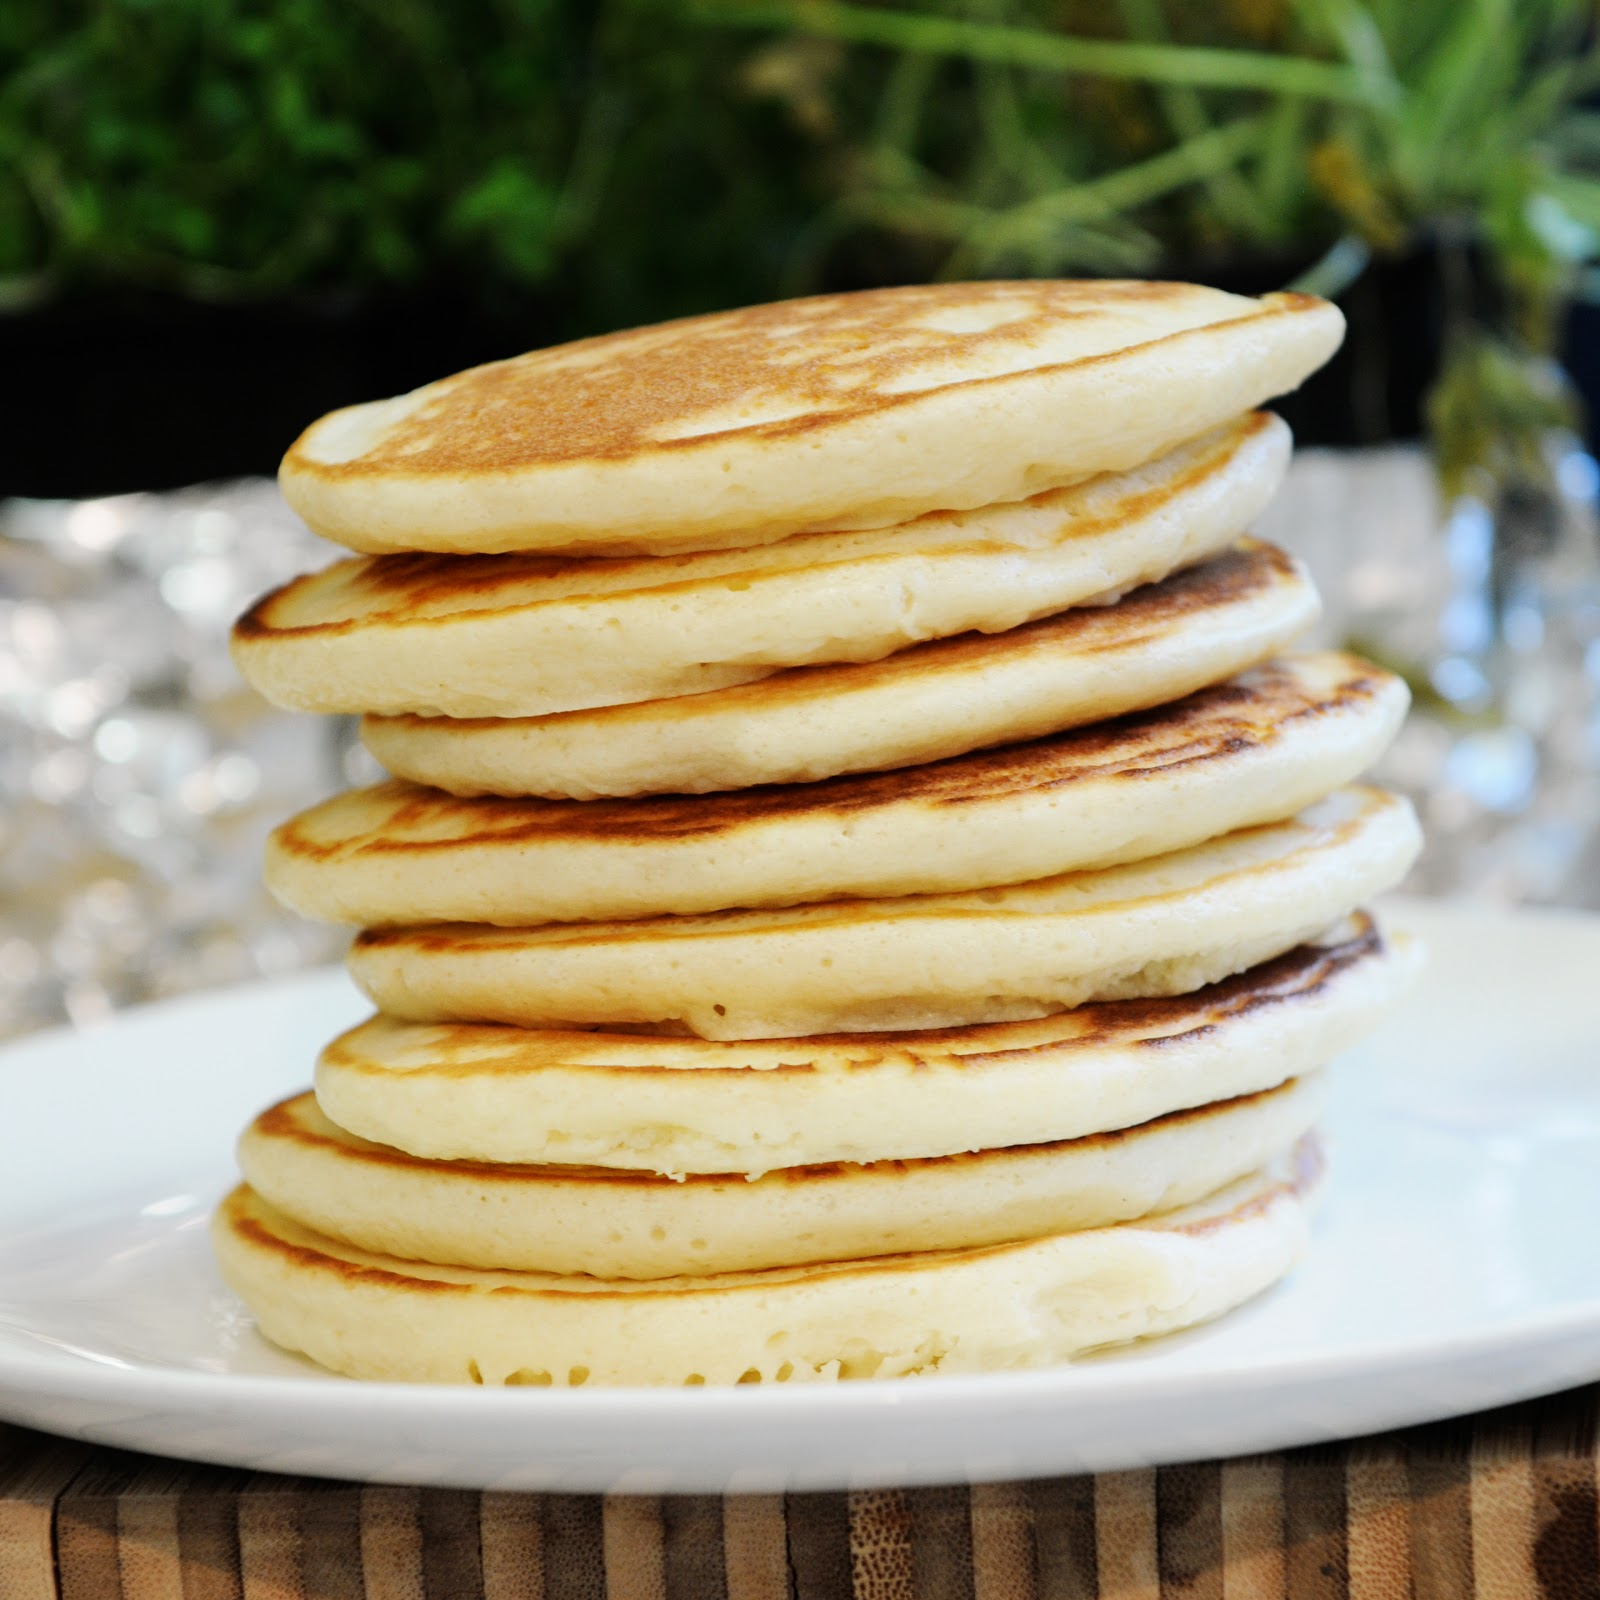 Simply Gourmet: Pancakes From Scratch